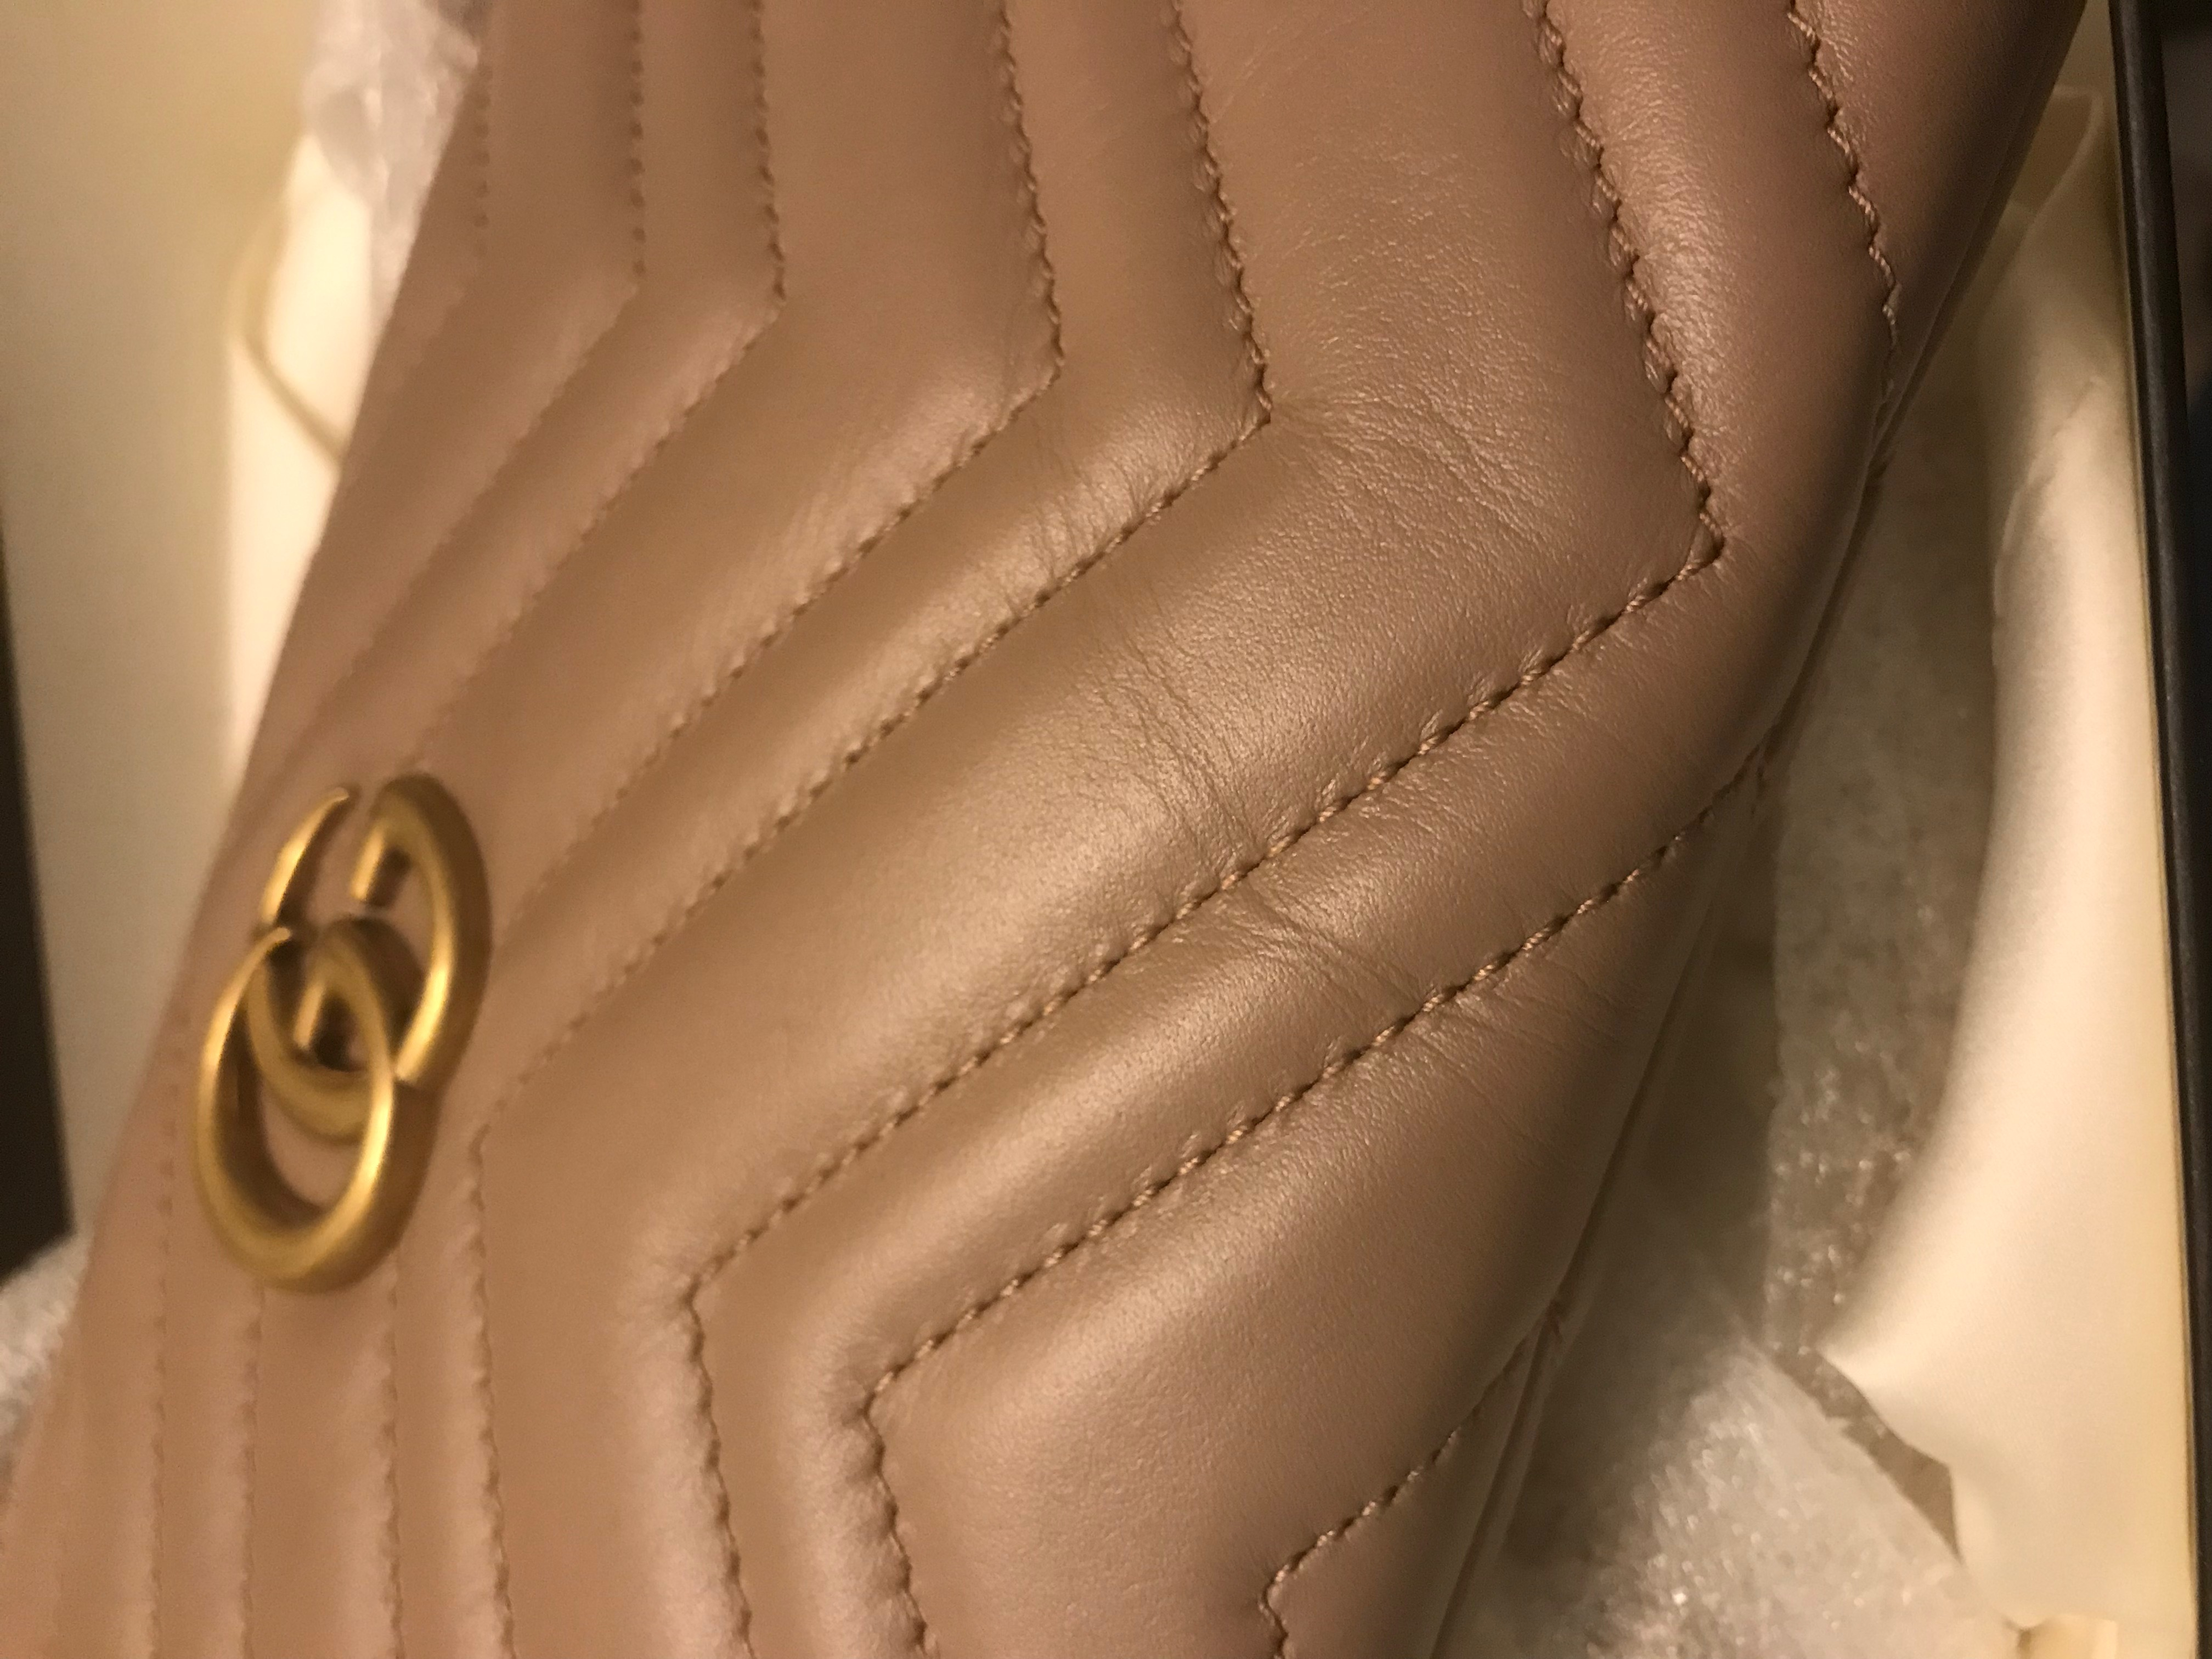 Gucci Marmont Leather Crinkled - Tia Perciballi